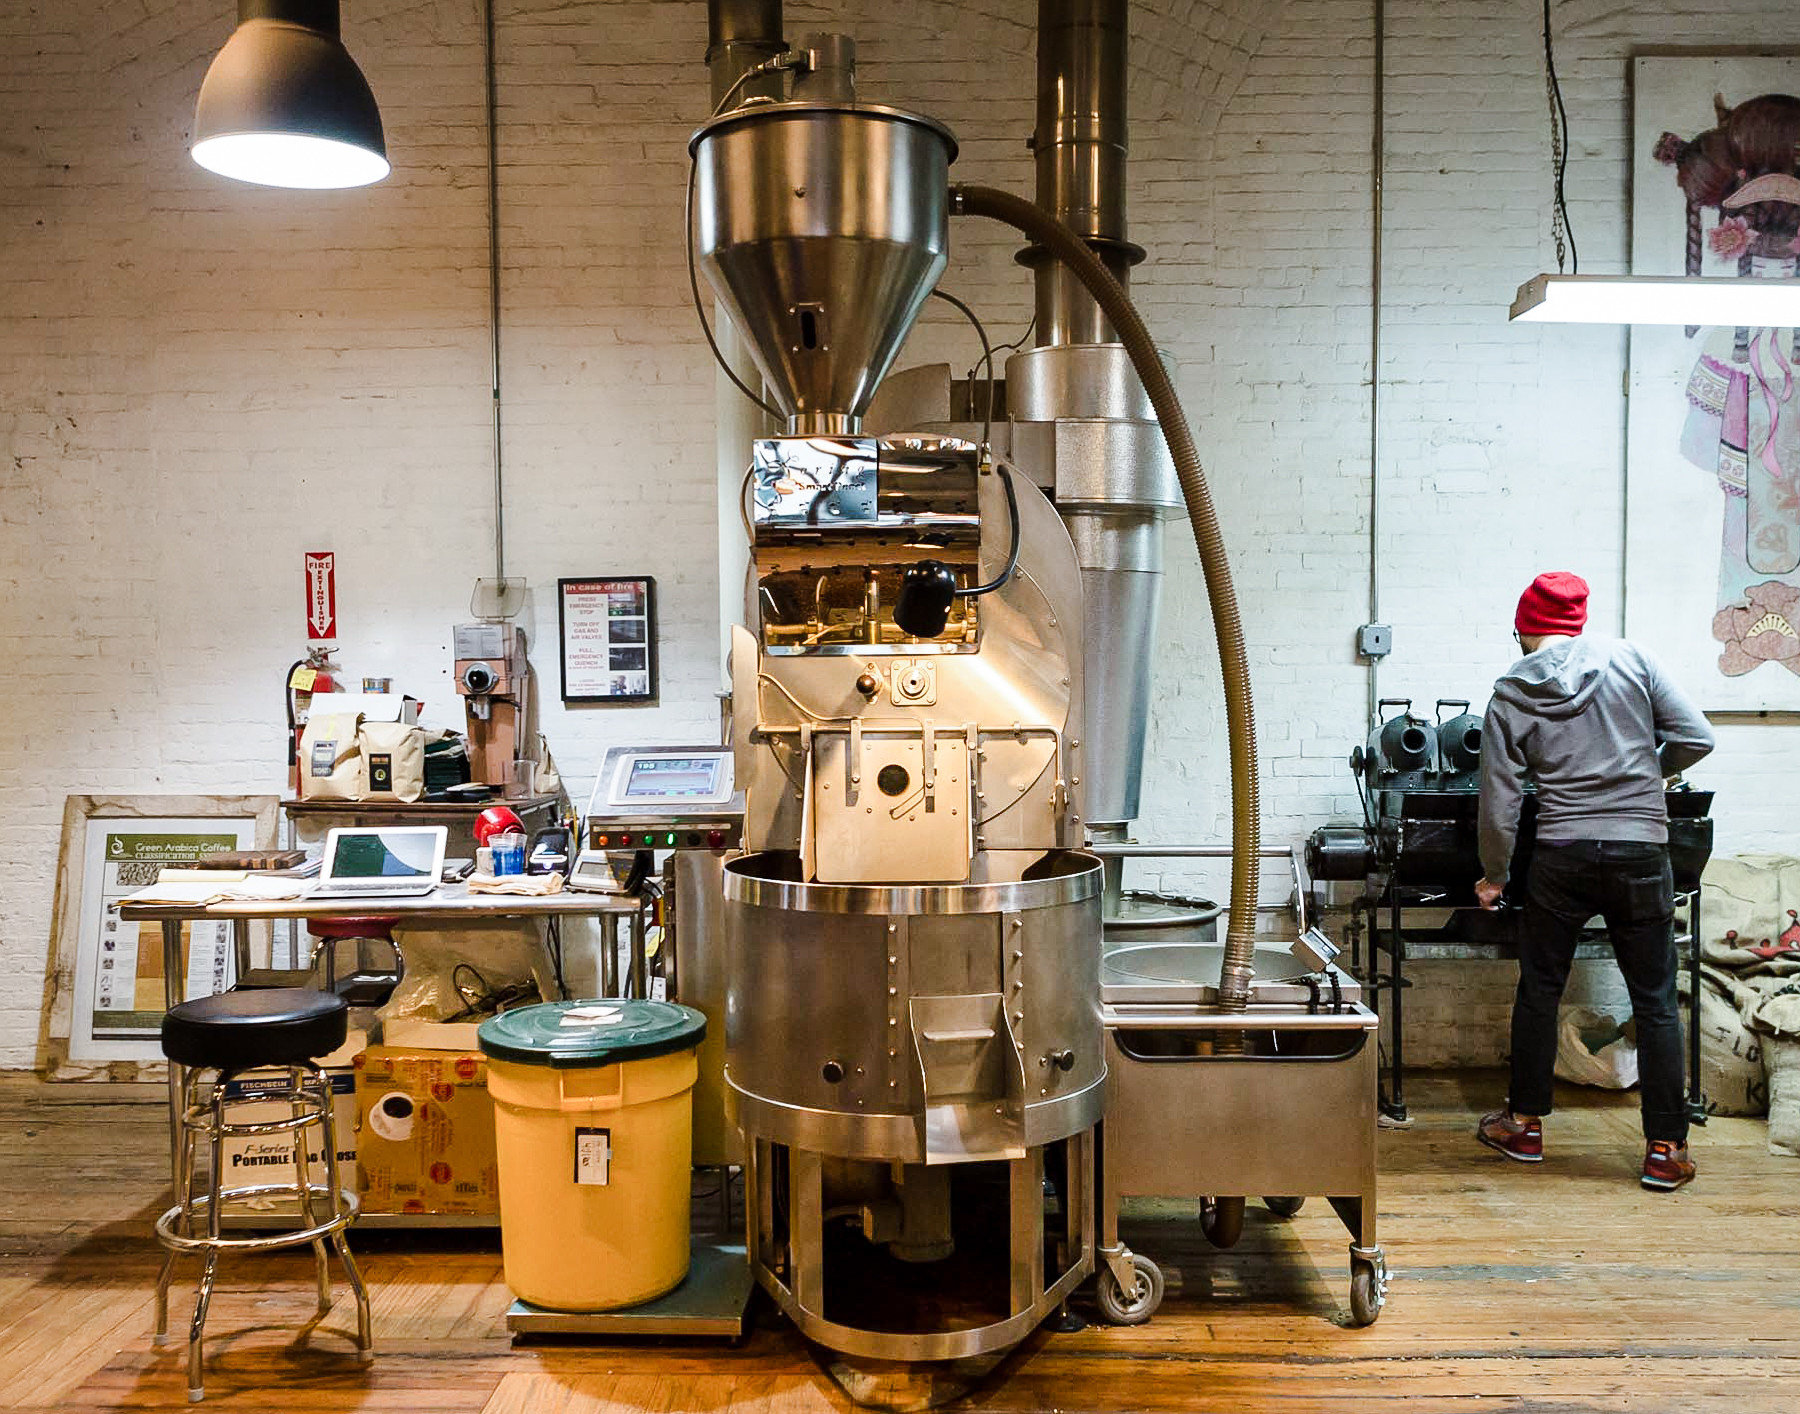 Brooklyn City Food + Drink NYC indoor machine cluttered cooking